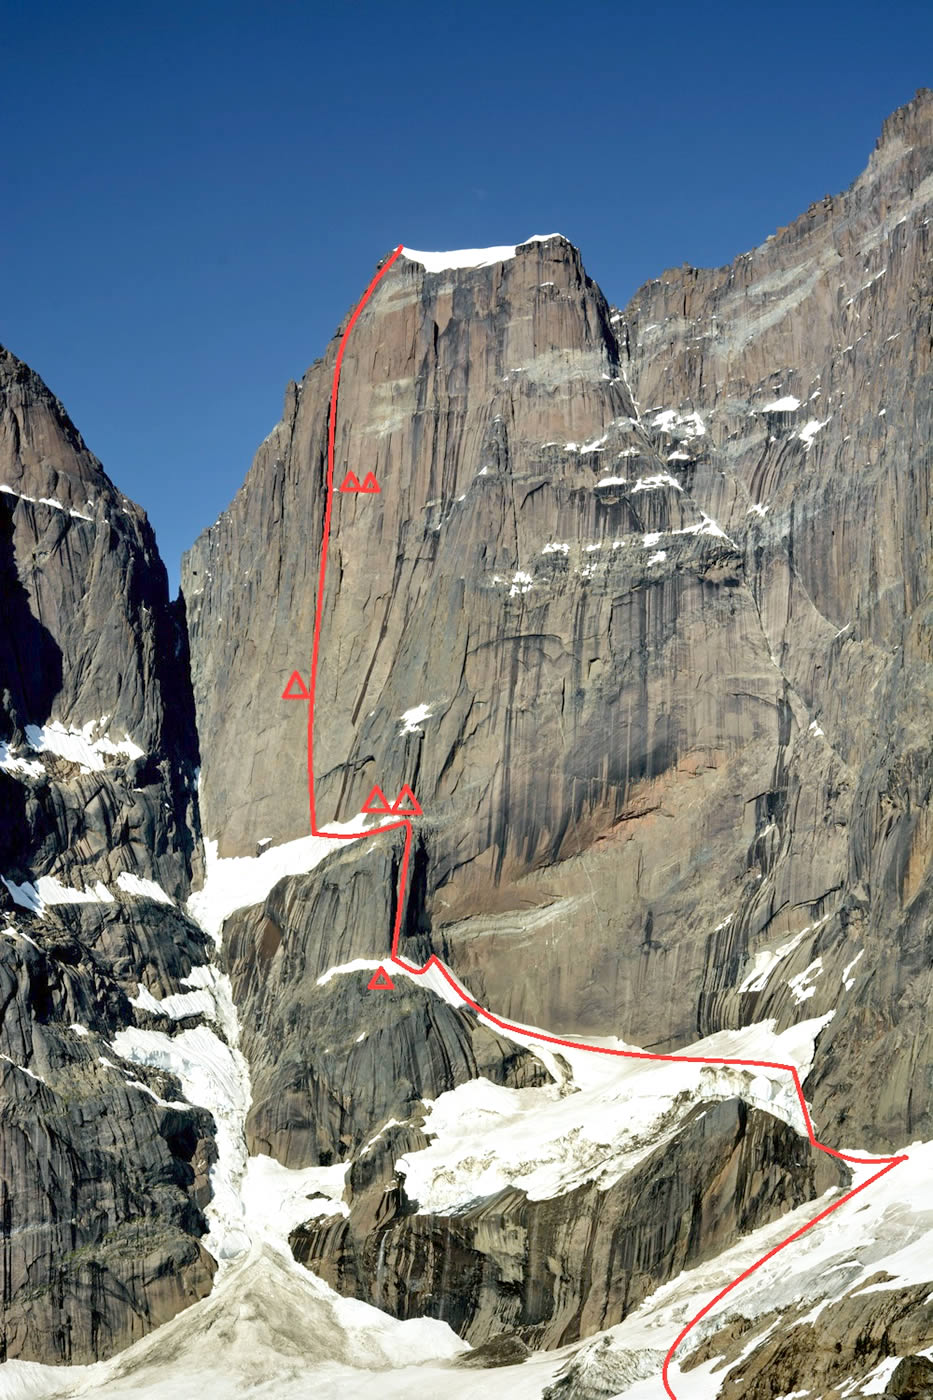 This photo has the team's new route, Metrophobia (7a A2+ 120-degree ice 1700m), marked in red on the west face of Greenland's Apostelens Tommelfinger (2315m).